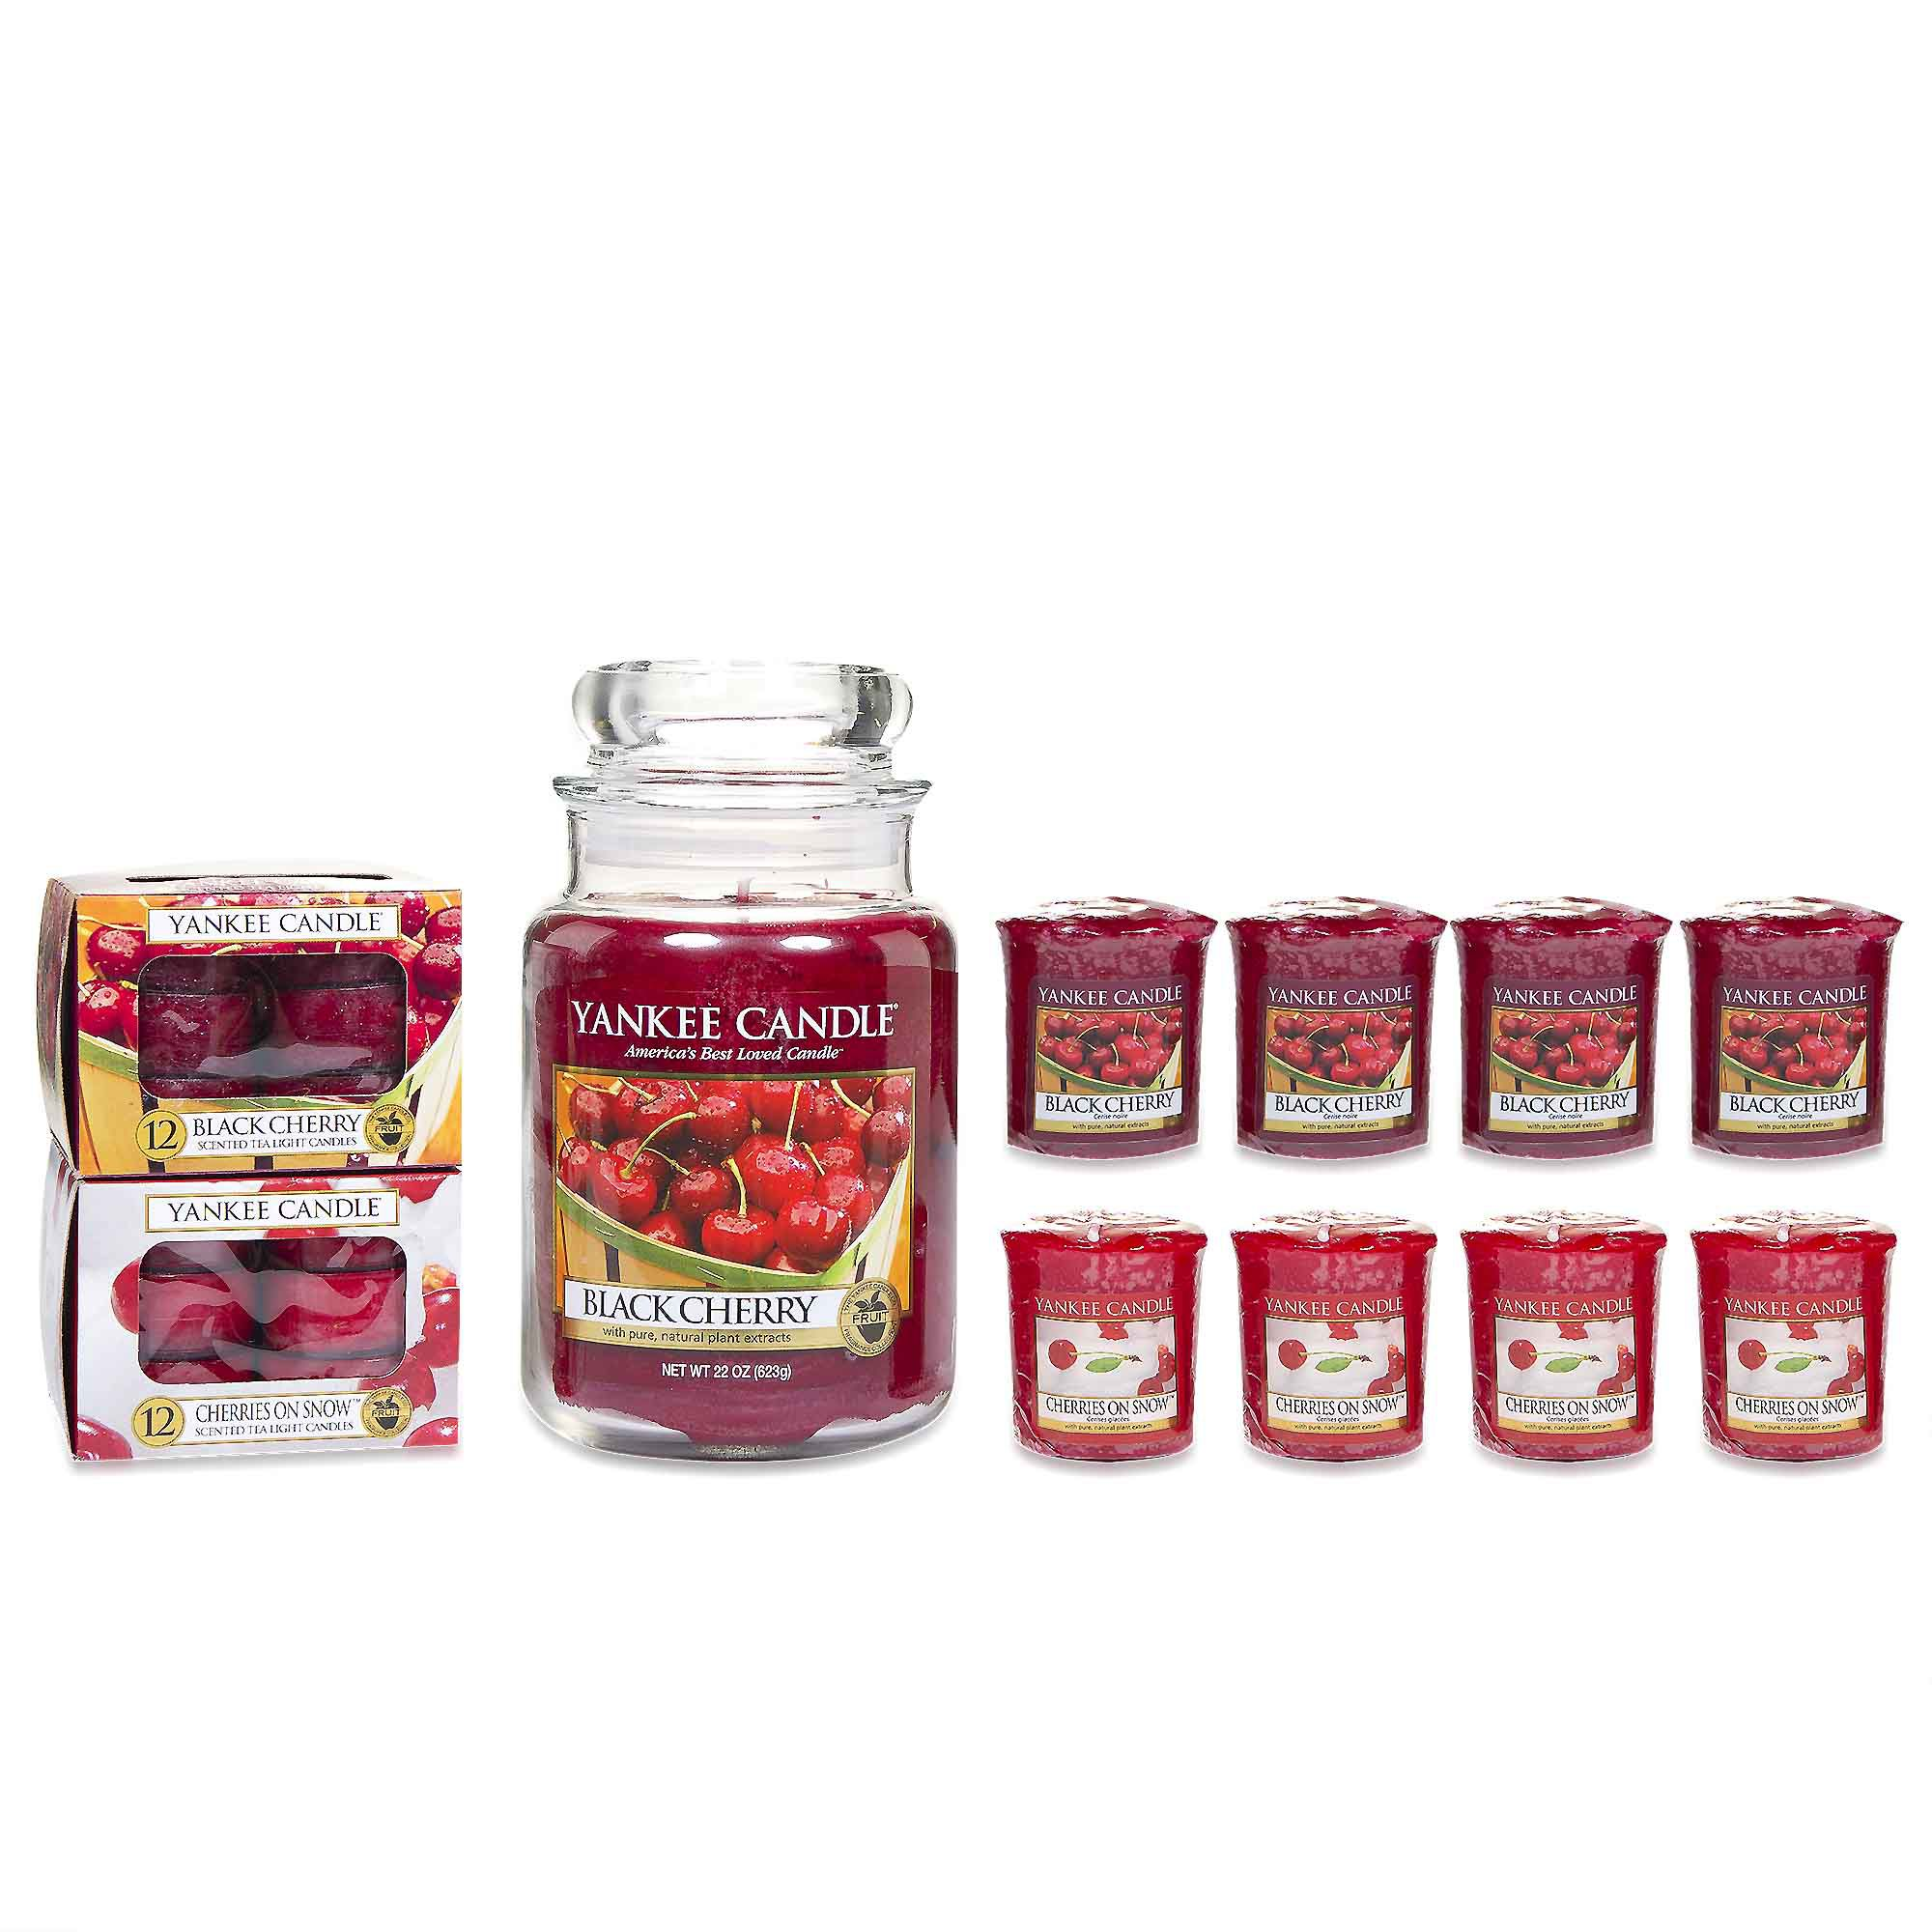 Yankee Candle Set 1 giara grande, 8 candele e 24 tealight in 2 fragranze